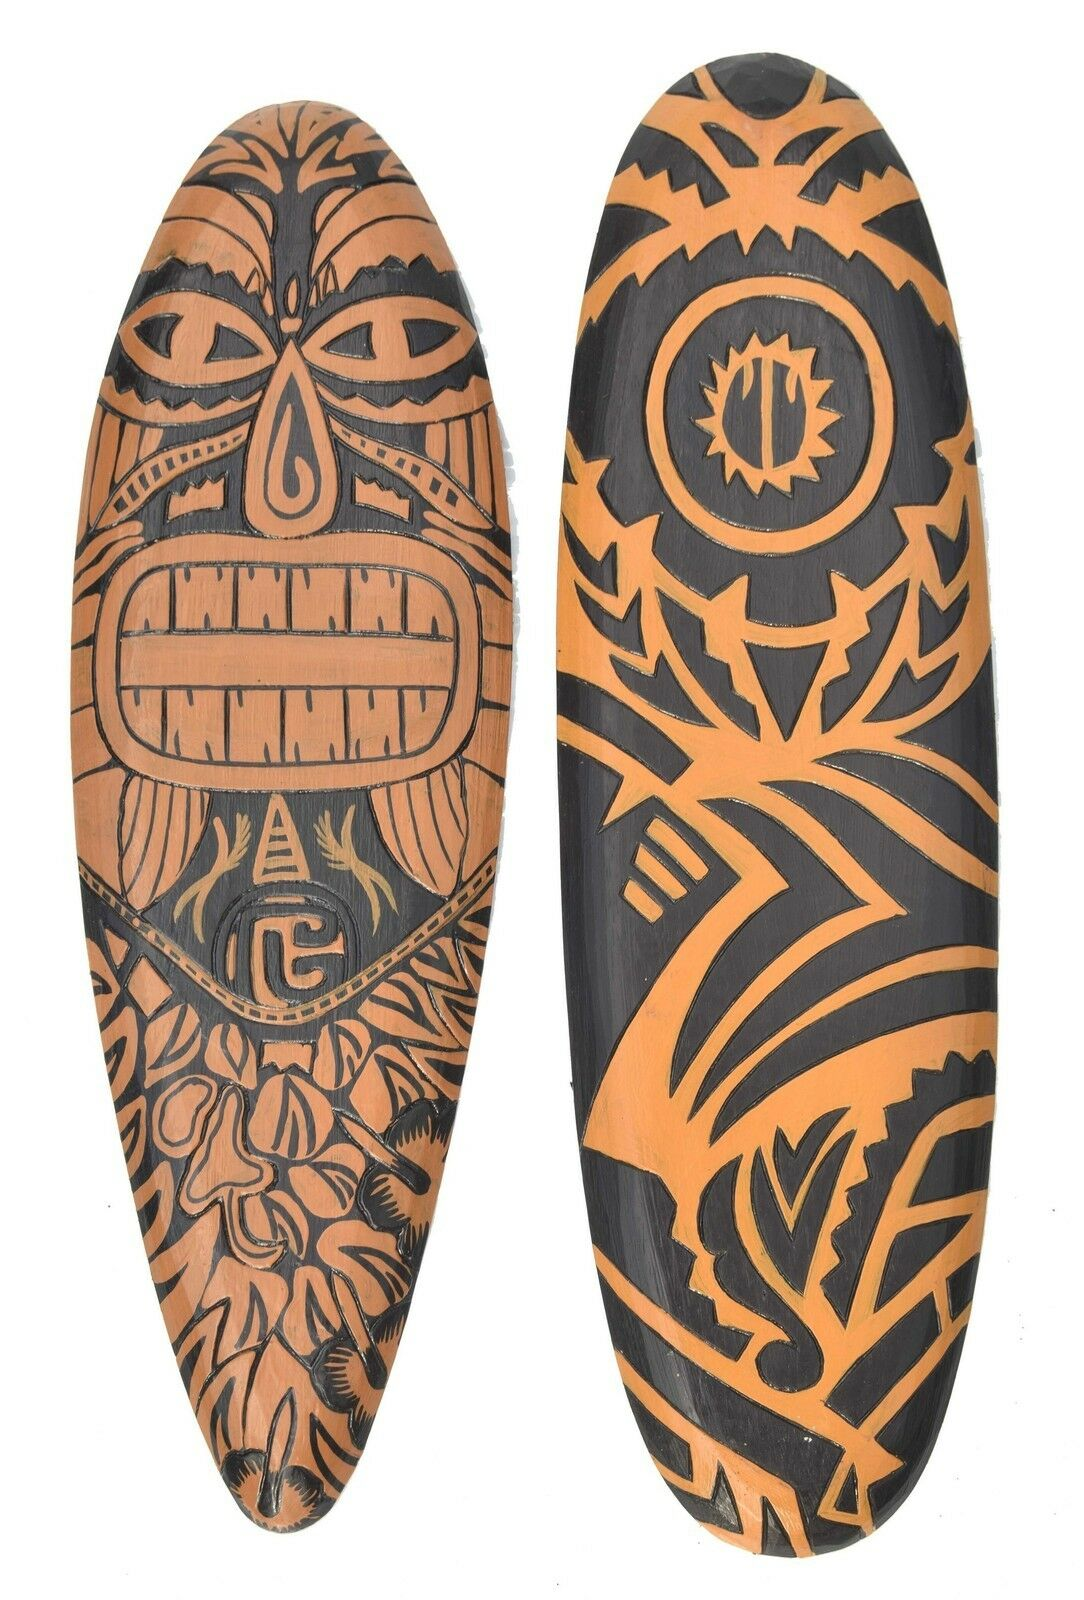 2 Deko Surfboards 60cm im Maori Tribal Stil Surfbrett im 2er Set Deko Hangboards